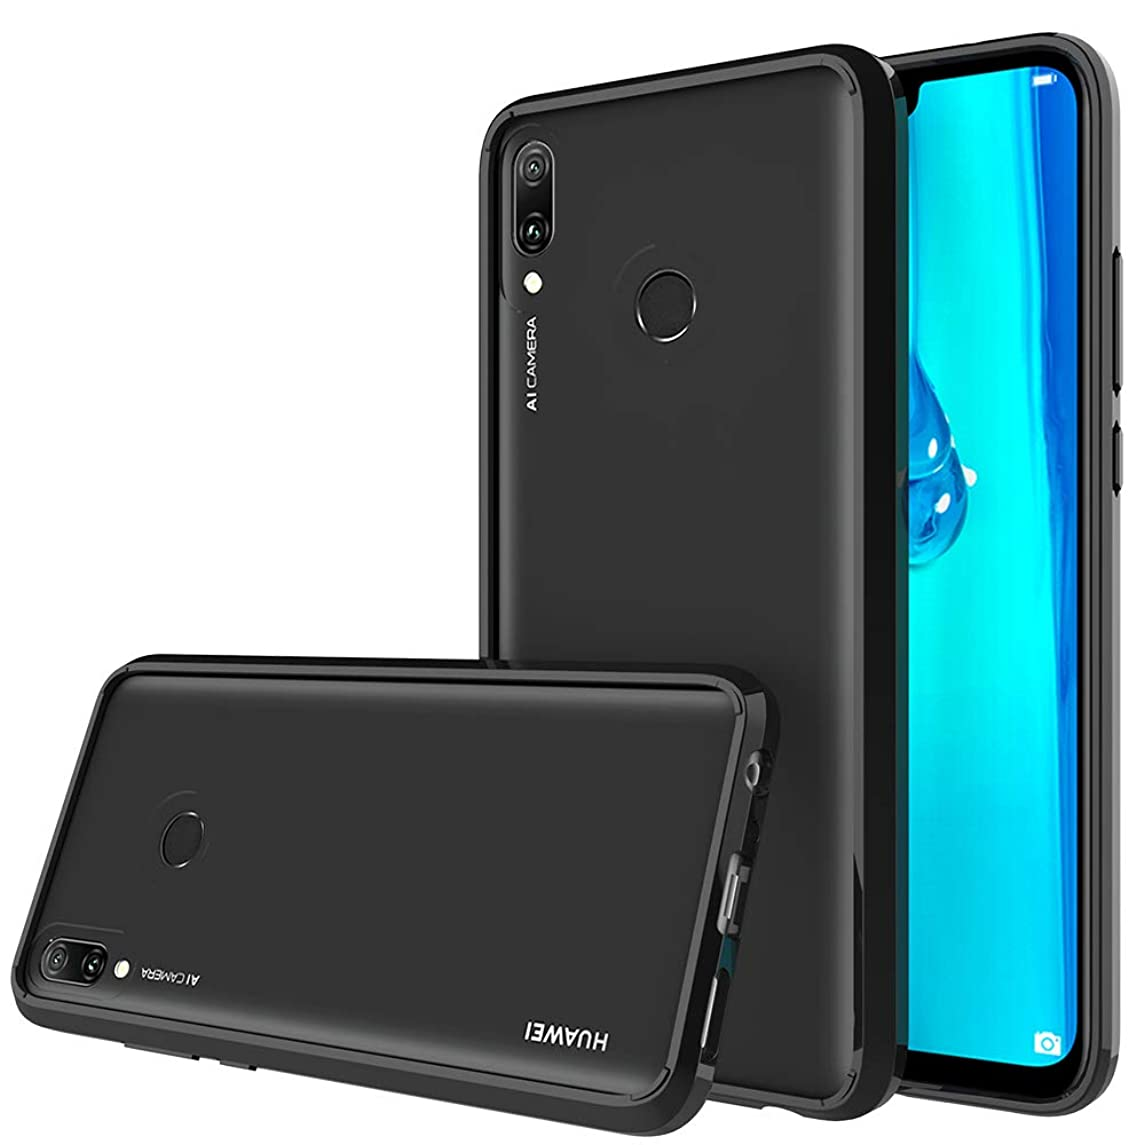 Huawei Y9 (2019) Case, CaseExpert Air Hybrid Ultra Slim Shockproof Crystal Clear Back Protective Case with TPU Bumper Cover for Huawei Y9 (2019)